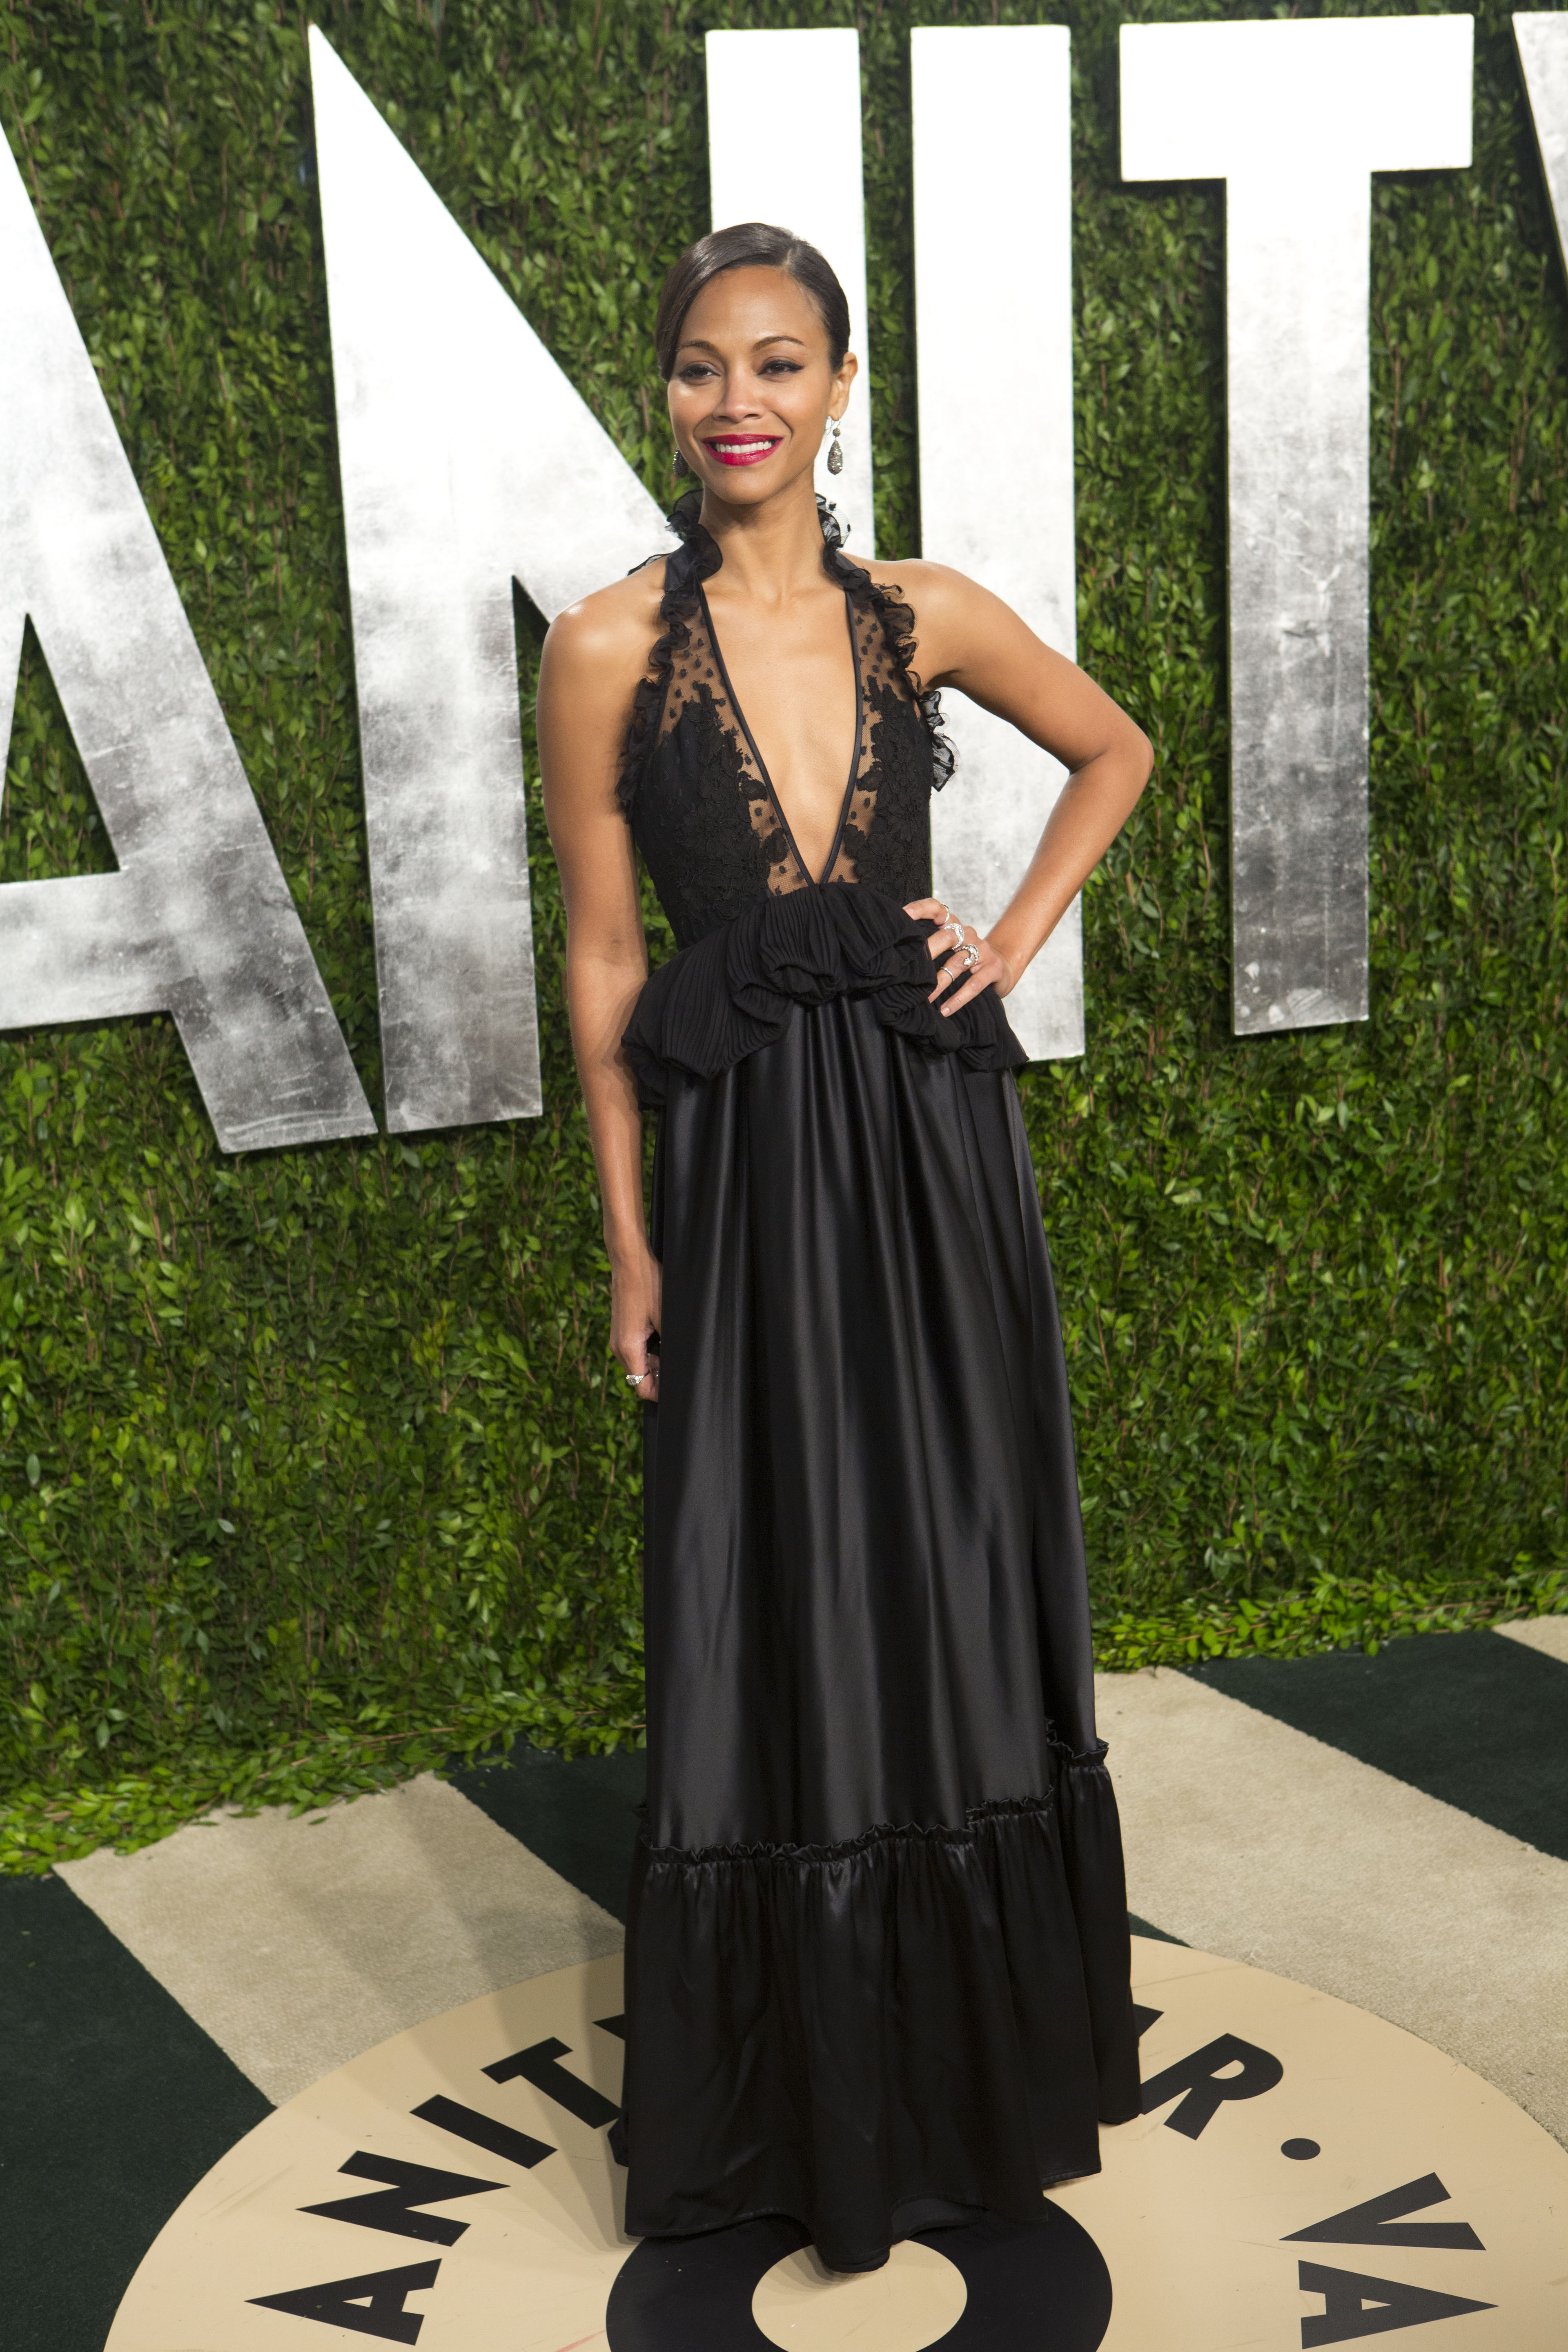 Zoe Saldana arrived at the Vanity Fair Oscar party.